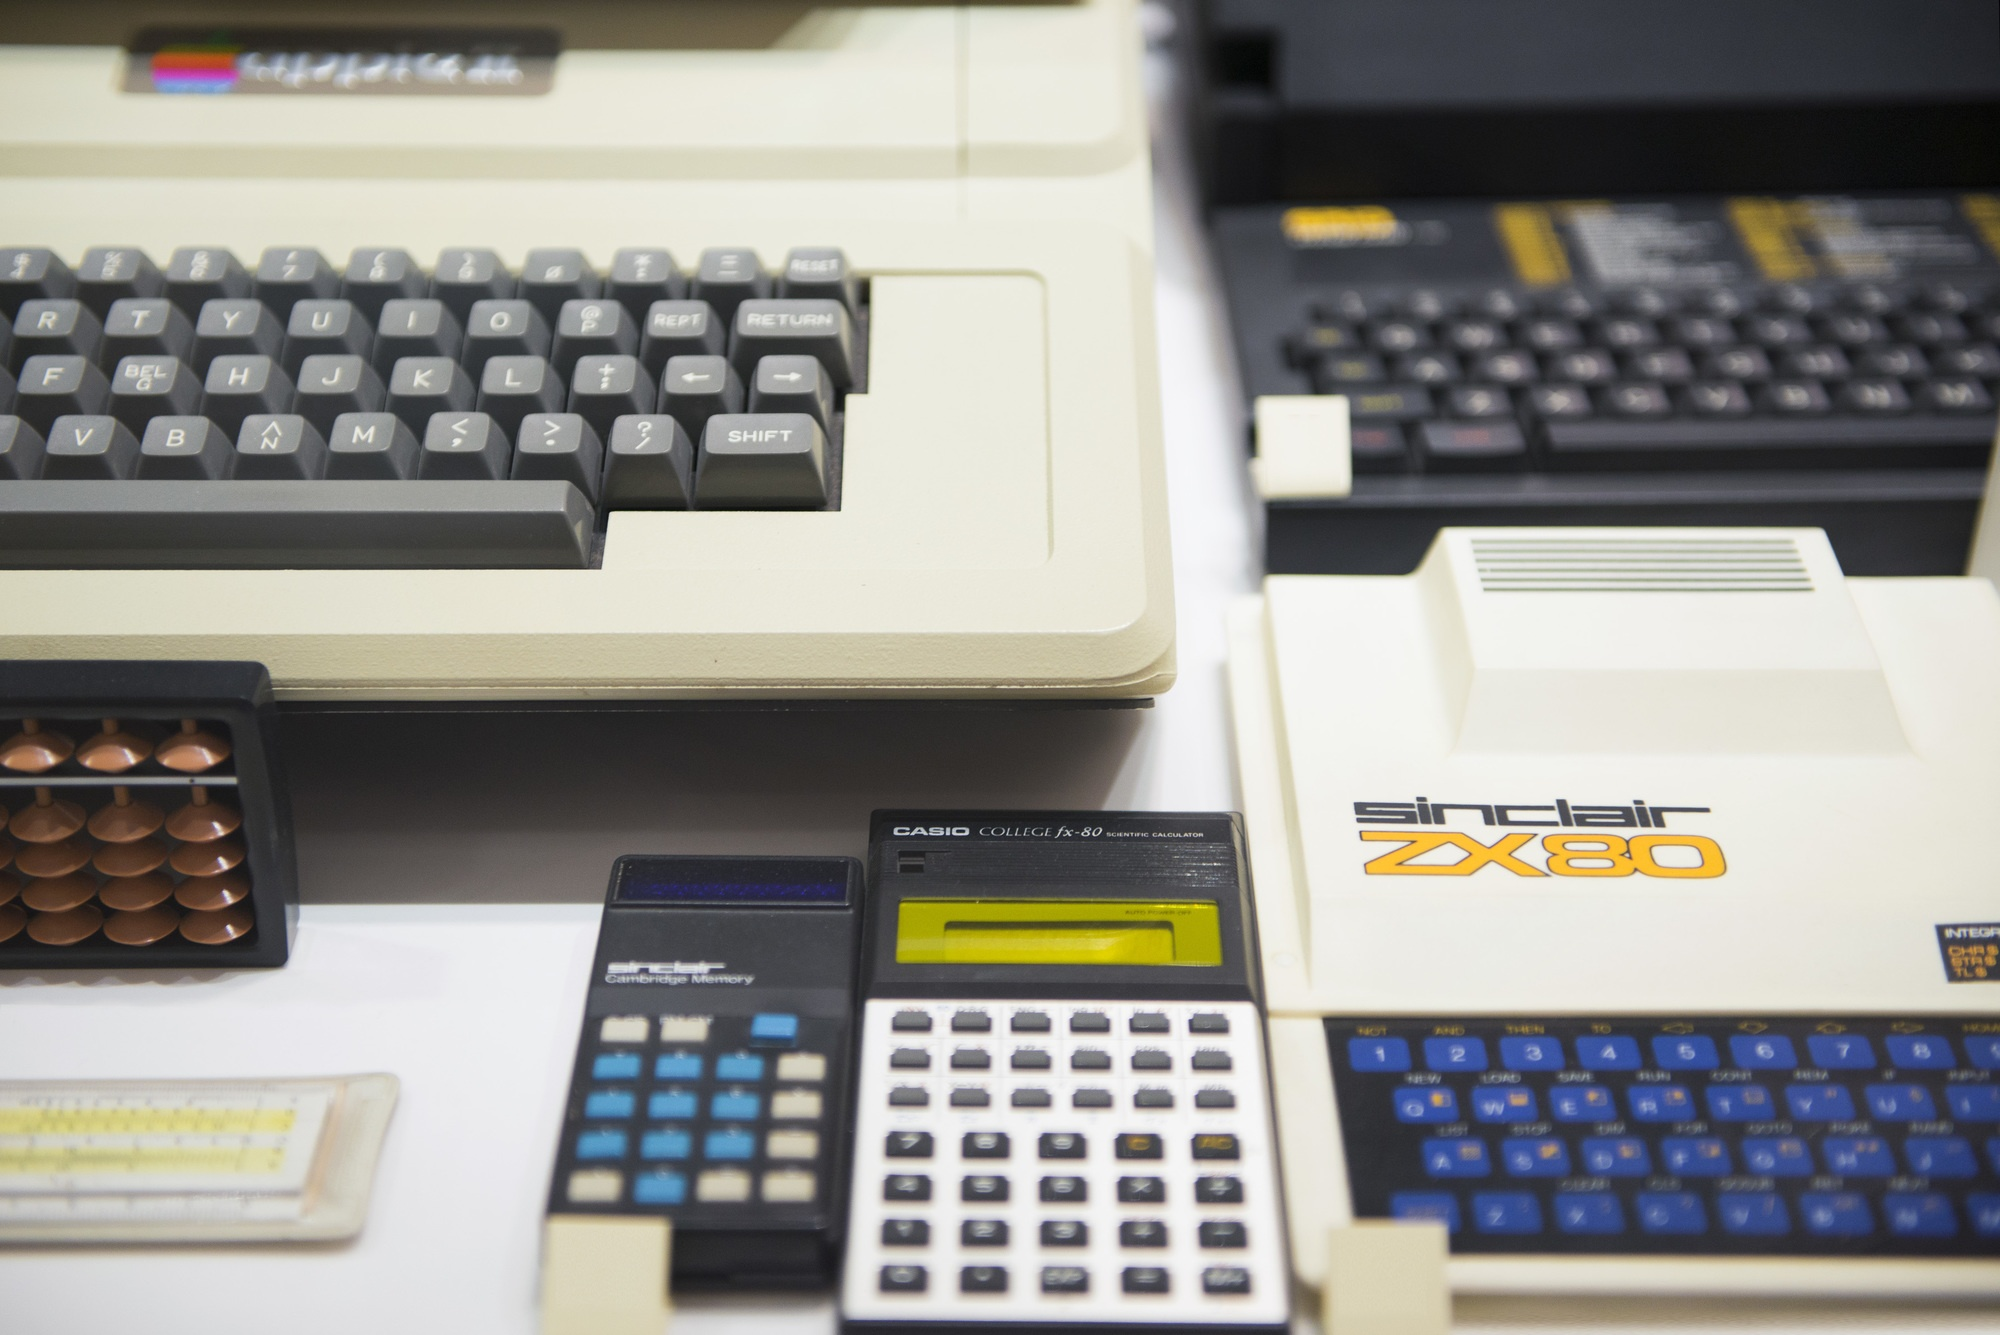 Various calculators and keyboards